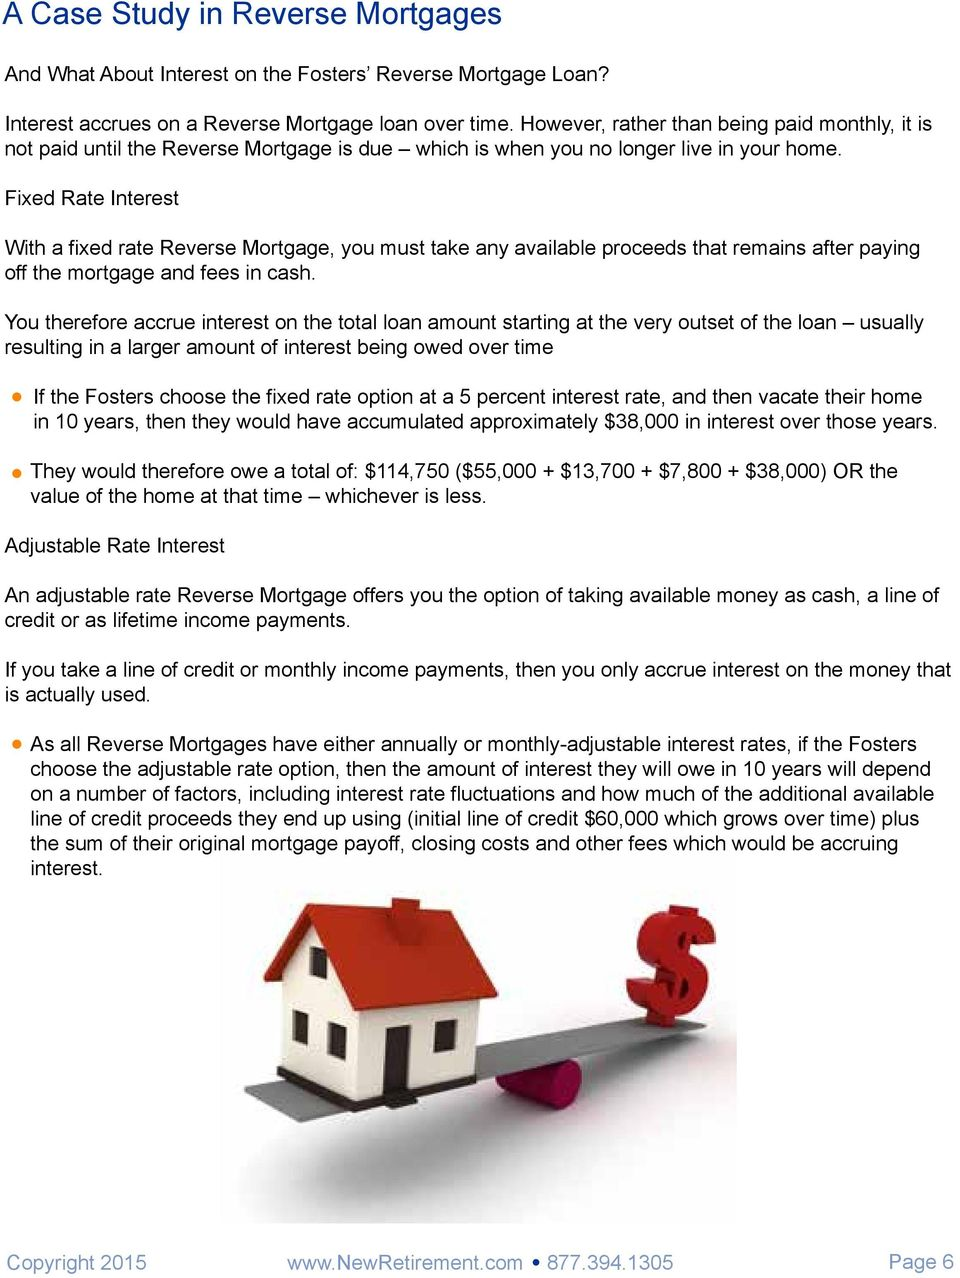 Fixed Rate Interest With a fixed rate Reverse Mortgage, you must take any available proceeds that remains after paying off the mortgage and fees in cash.